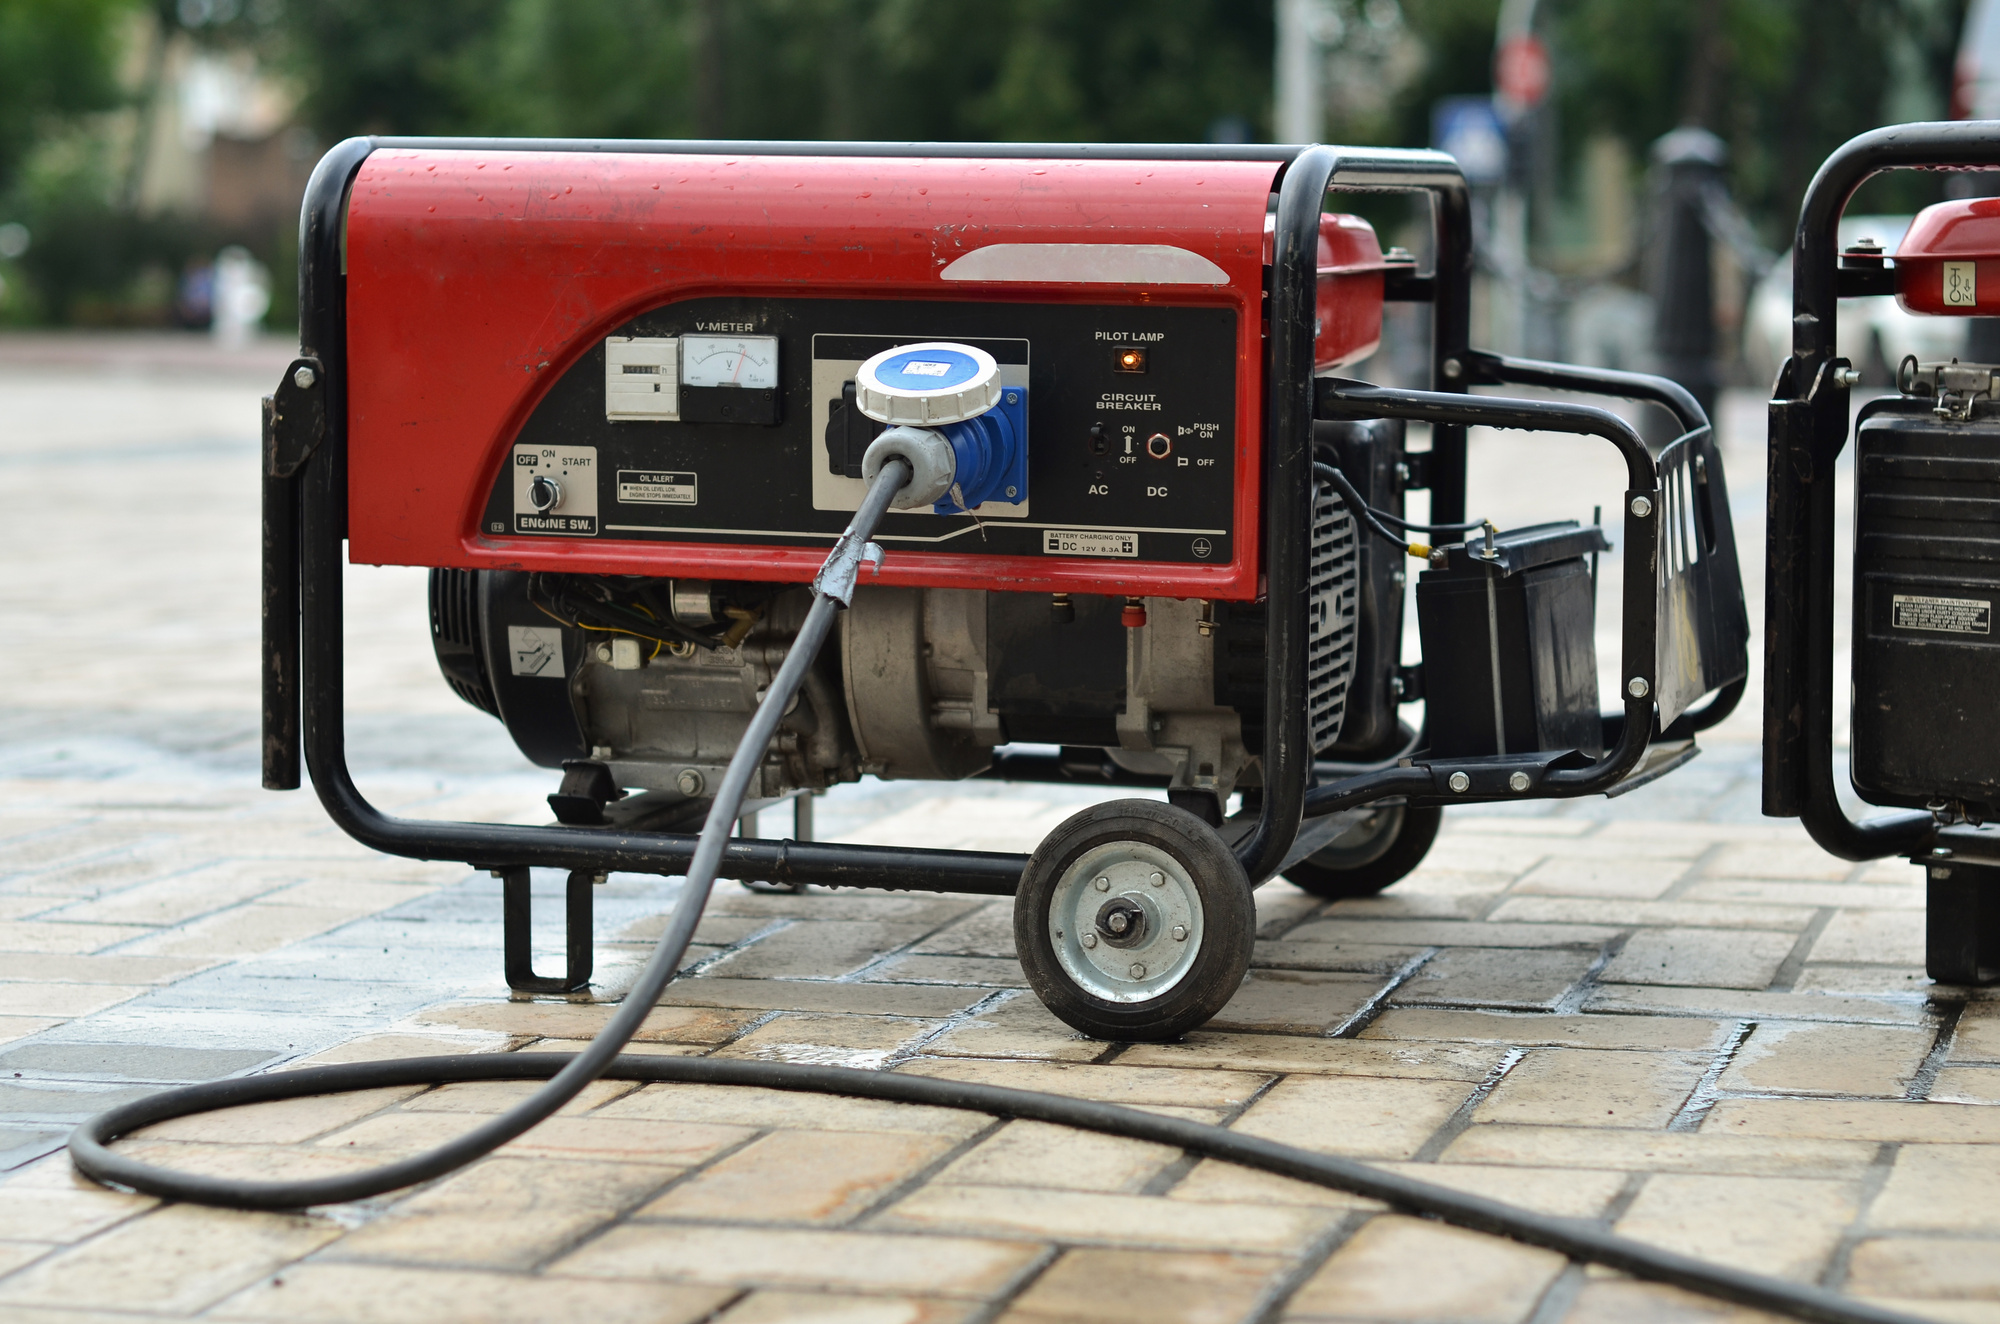 A Homeowners Guide To Choosing Home Generator Sweet Captcha Ac Schematic Diagram On Will Prove Be Lifesaver Should Ever Your Electric Go Out For Long Period Of Time Learn More About Generators And How